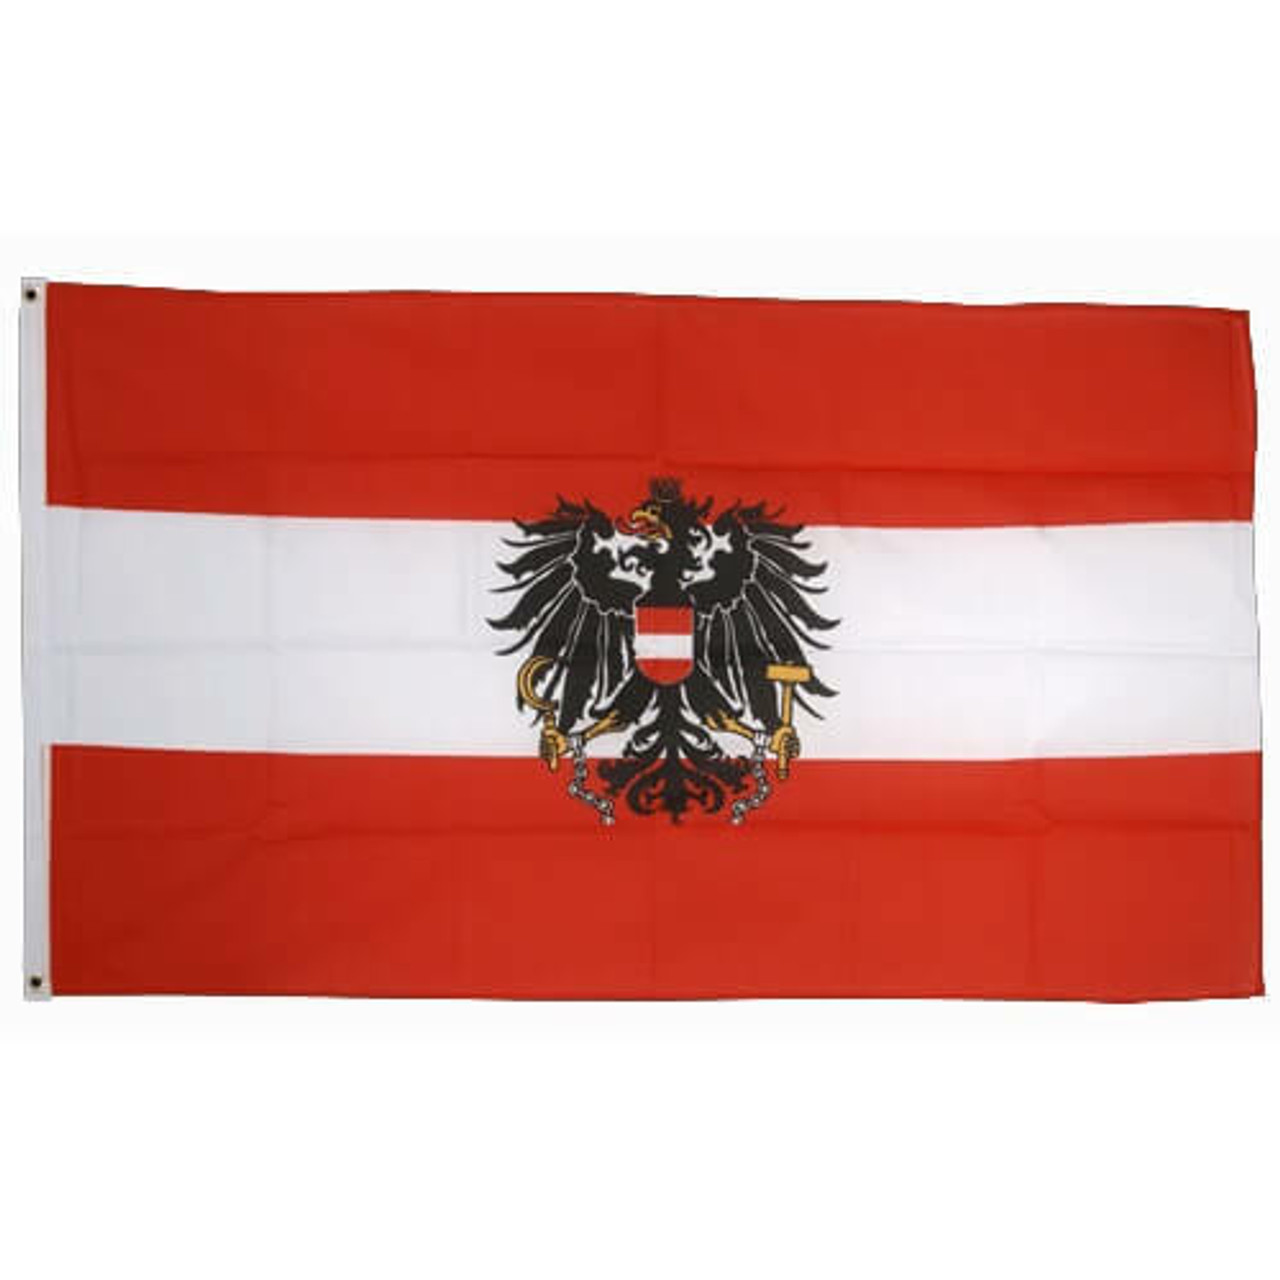 Austria with Eagle Flag. Red top and bottom stripe with white middle stripe. Eagle at center.